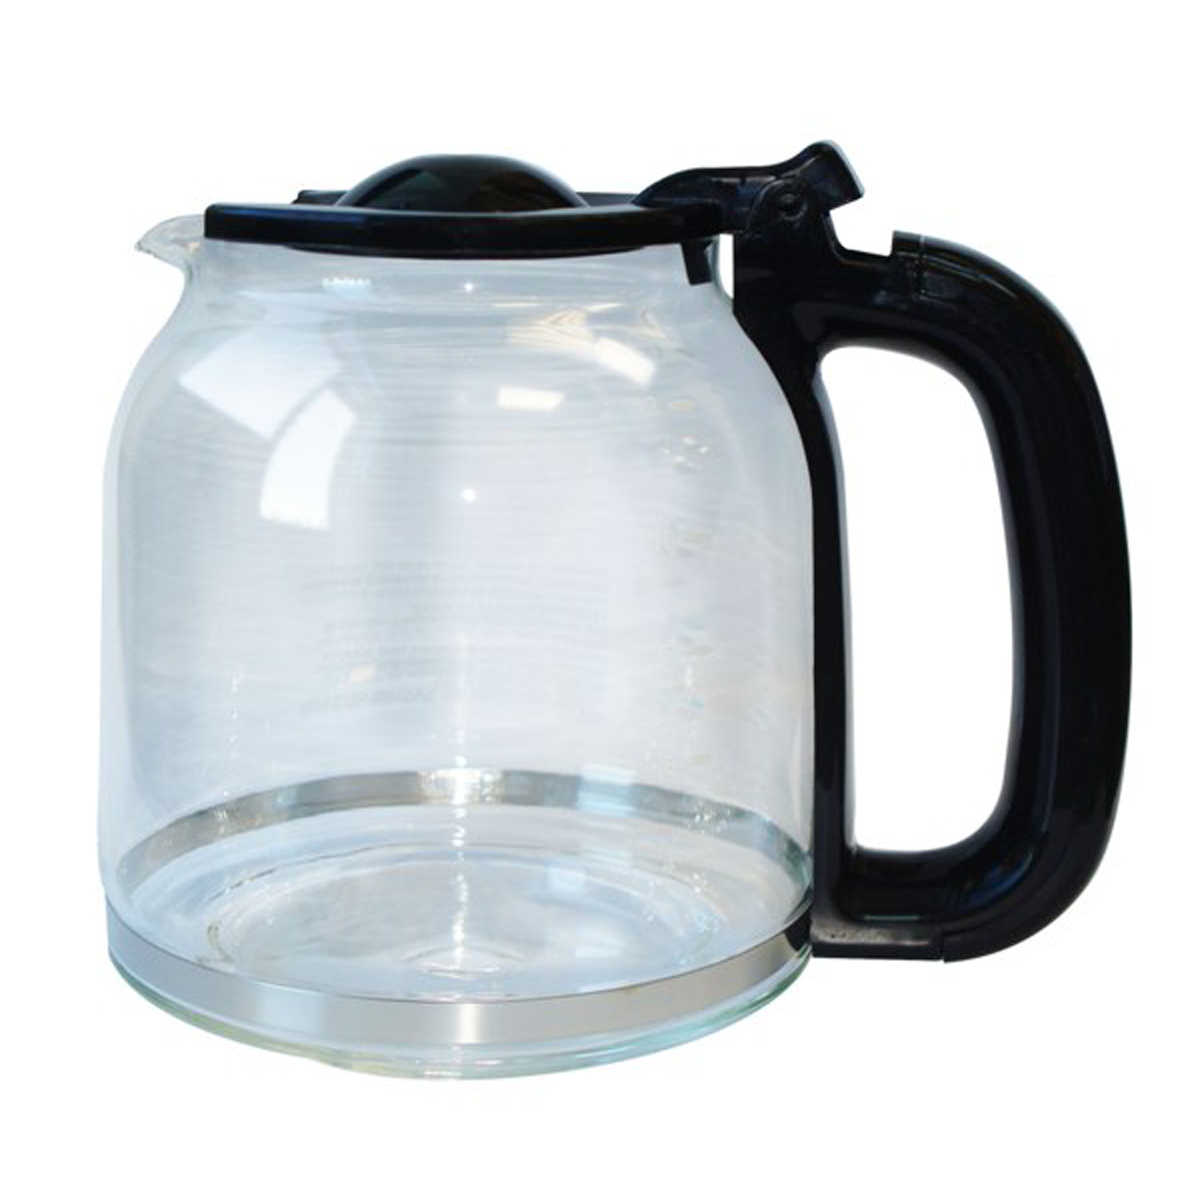 Sunbeam Percolator Coffee Maker : Sunbeam Coffee Maker 12-Cup Decanter, Black Sunbeam Canada